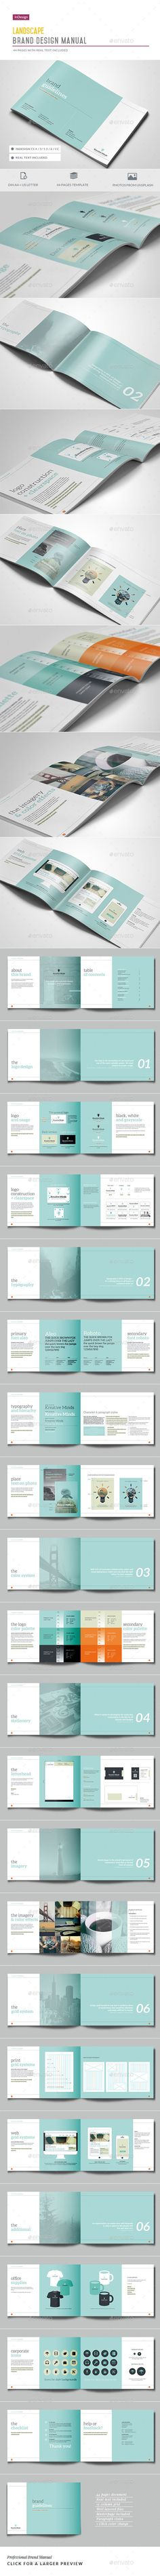 Brand Guidelines - 44 Pages Template InDesign INDD #design Download: http://graphicriver.net/item/brand-guidelines-44-pages/13840650?ref=ksioks